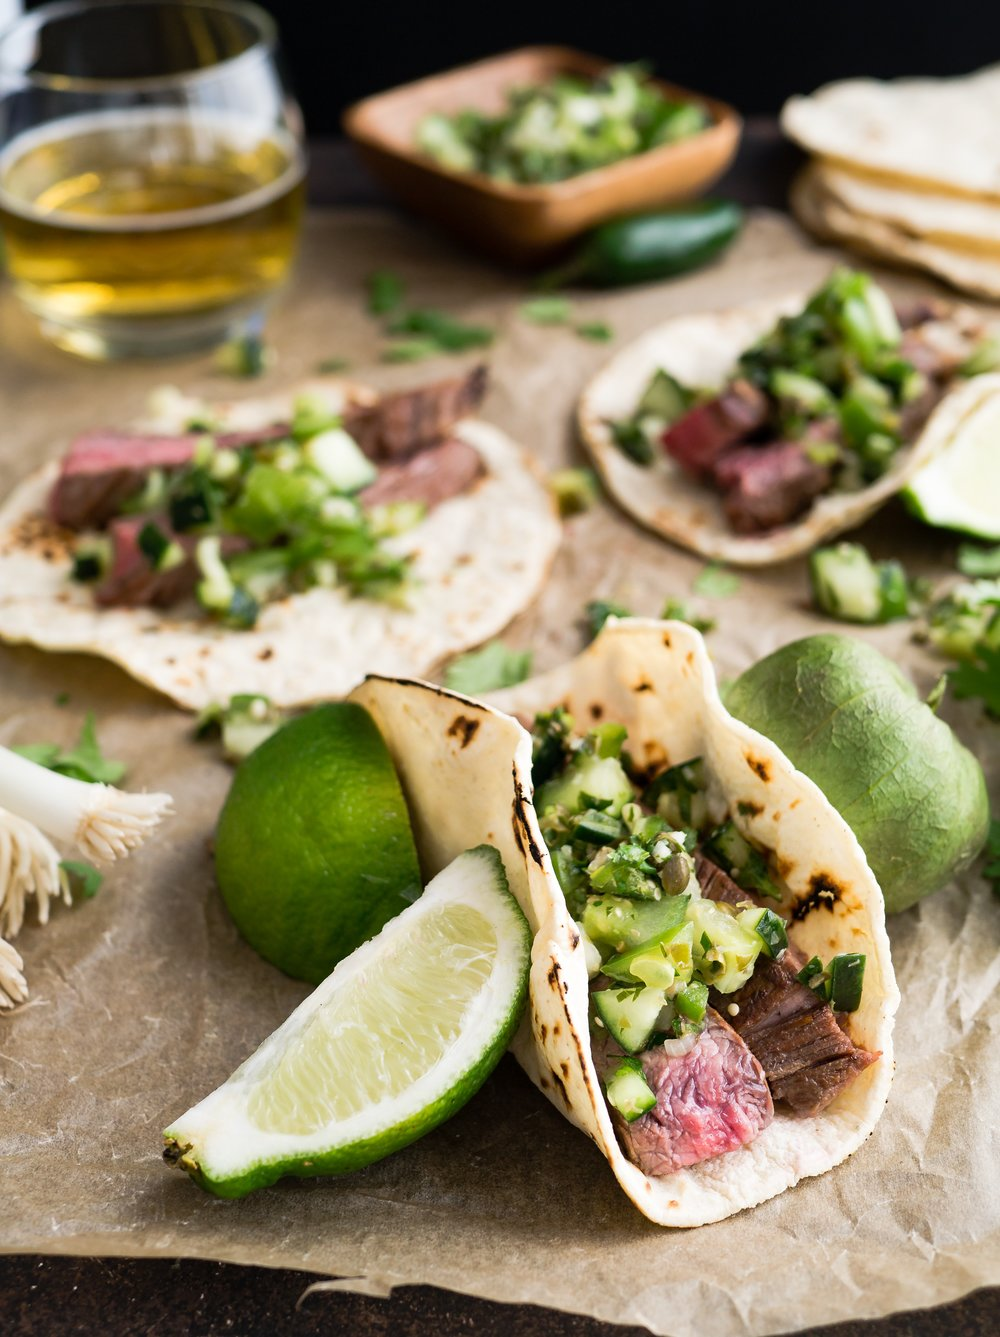 Tacos are one of my love languages, so I can put them down if I'm not paying attention and implementing the tools below! But, they have to be worth it - I'll rarely eat a regular old taco.